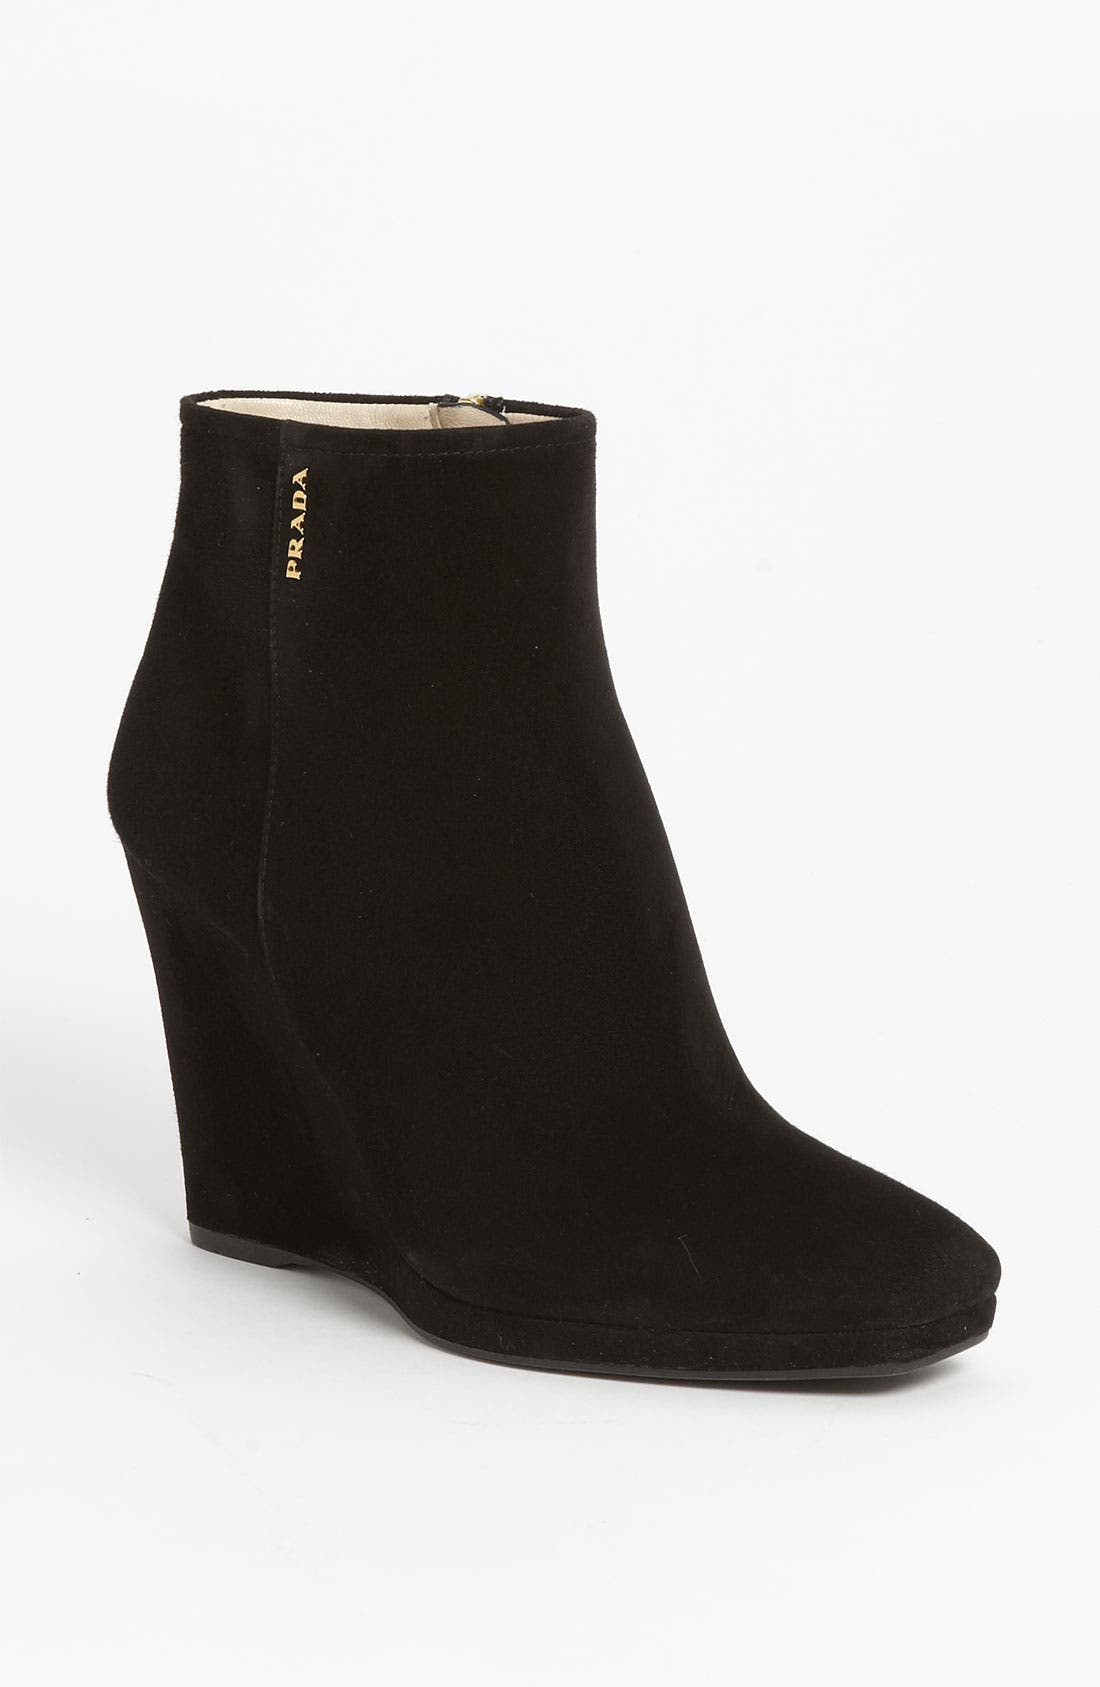 Alternate Image 1 Selected - Prada Wedge Ankle Boot